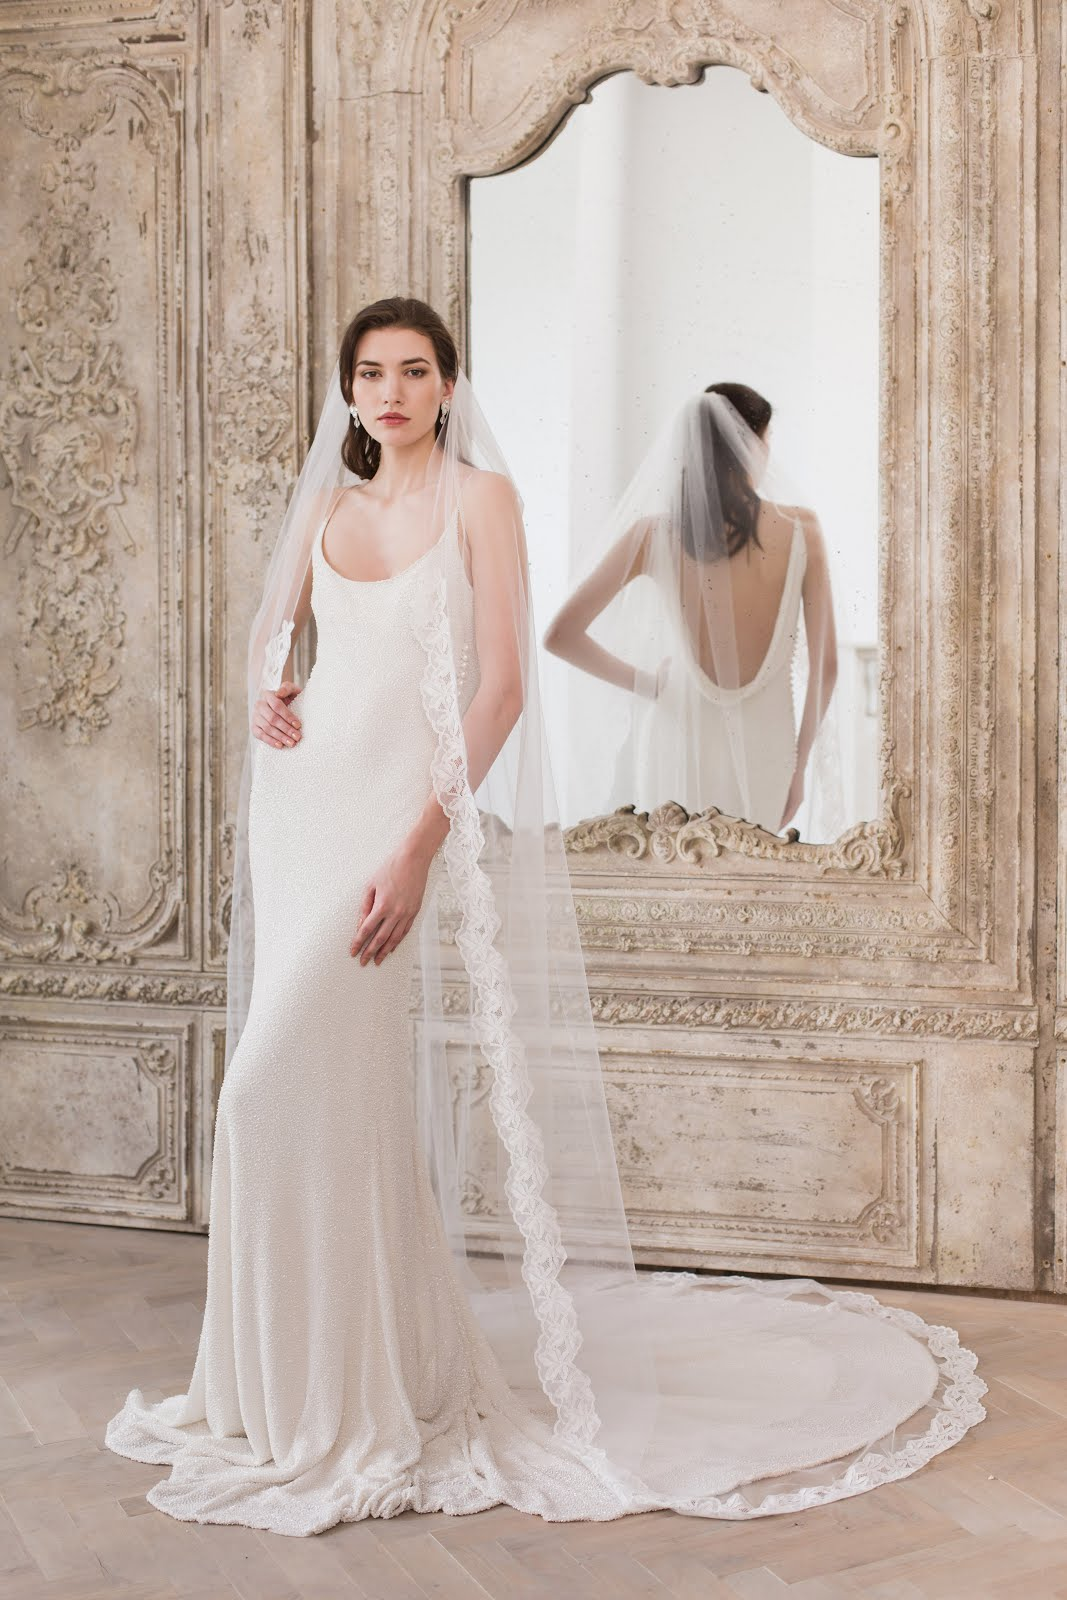 Choosing a wedding dress  - what you need to know